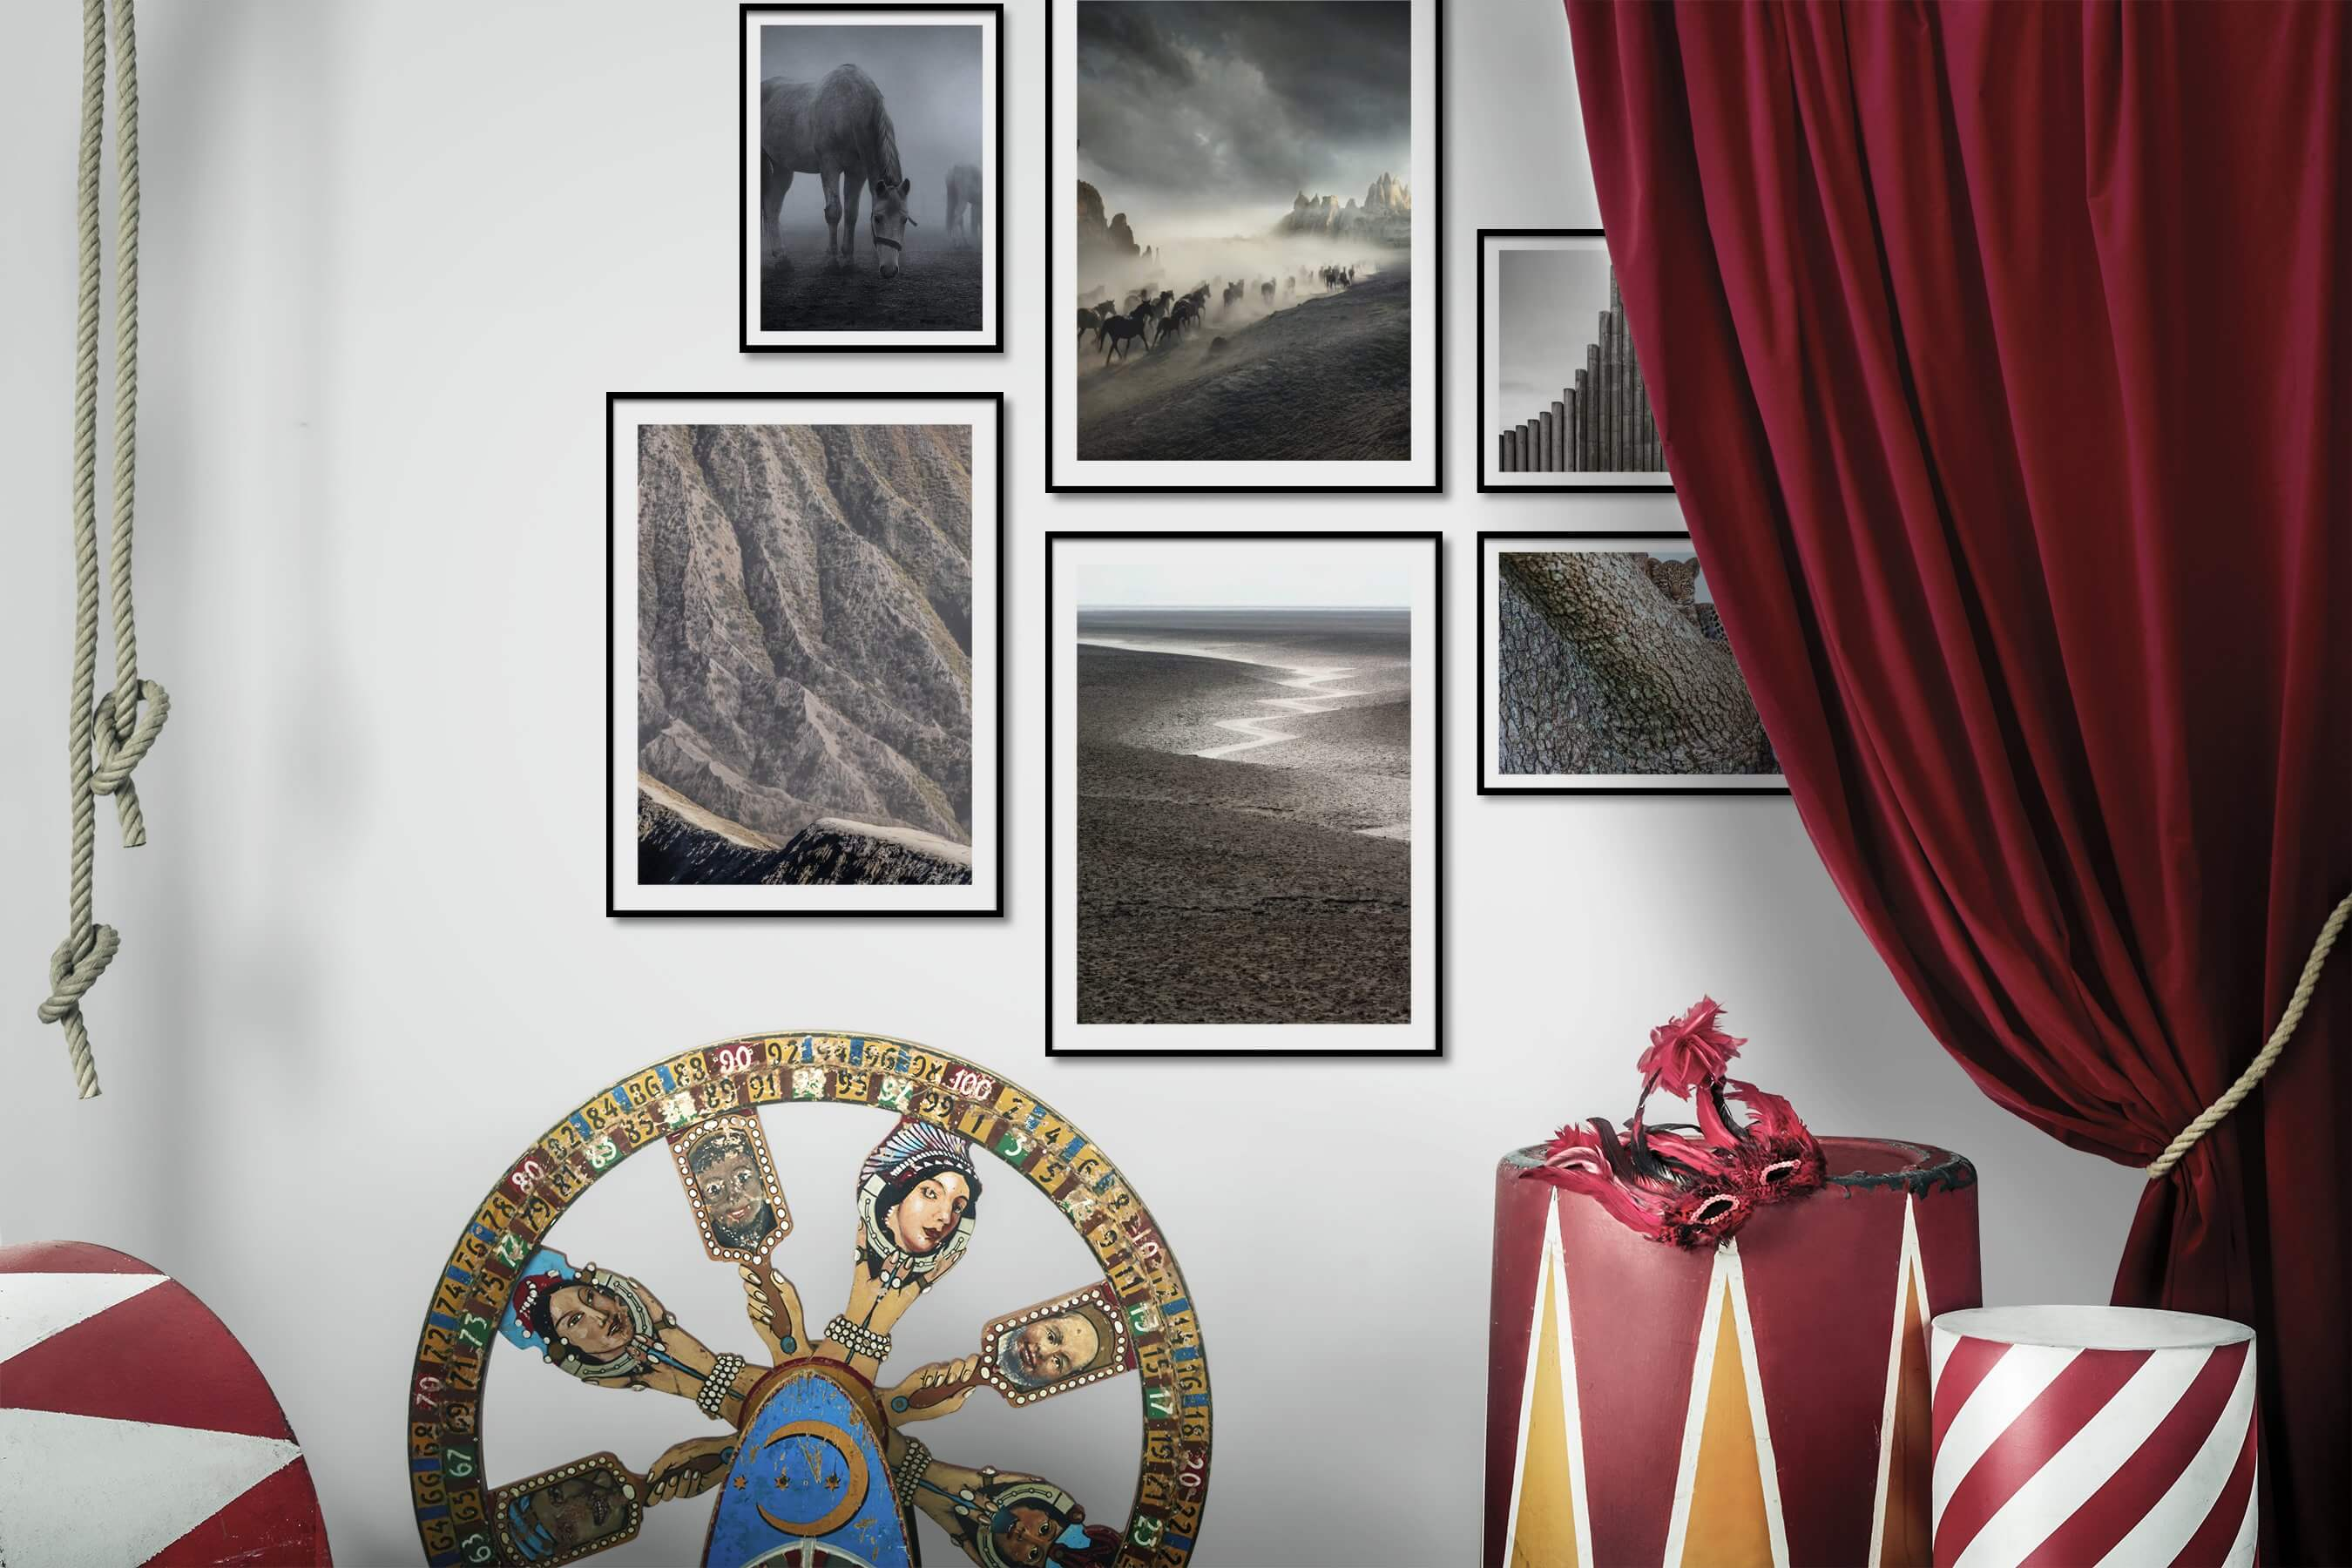 Gallery wall idea with six framed pictures arranged on a wall depicting Black & White, Animals, Country Life, Nature, For the Minimalist, and For the Moderate